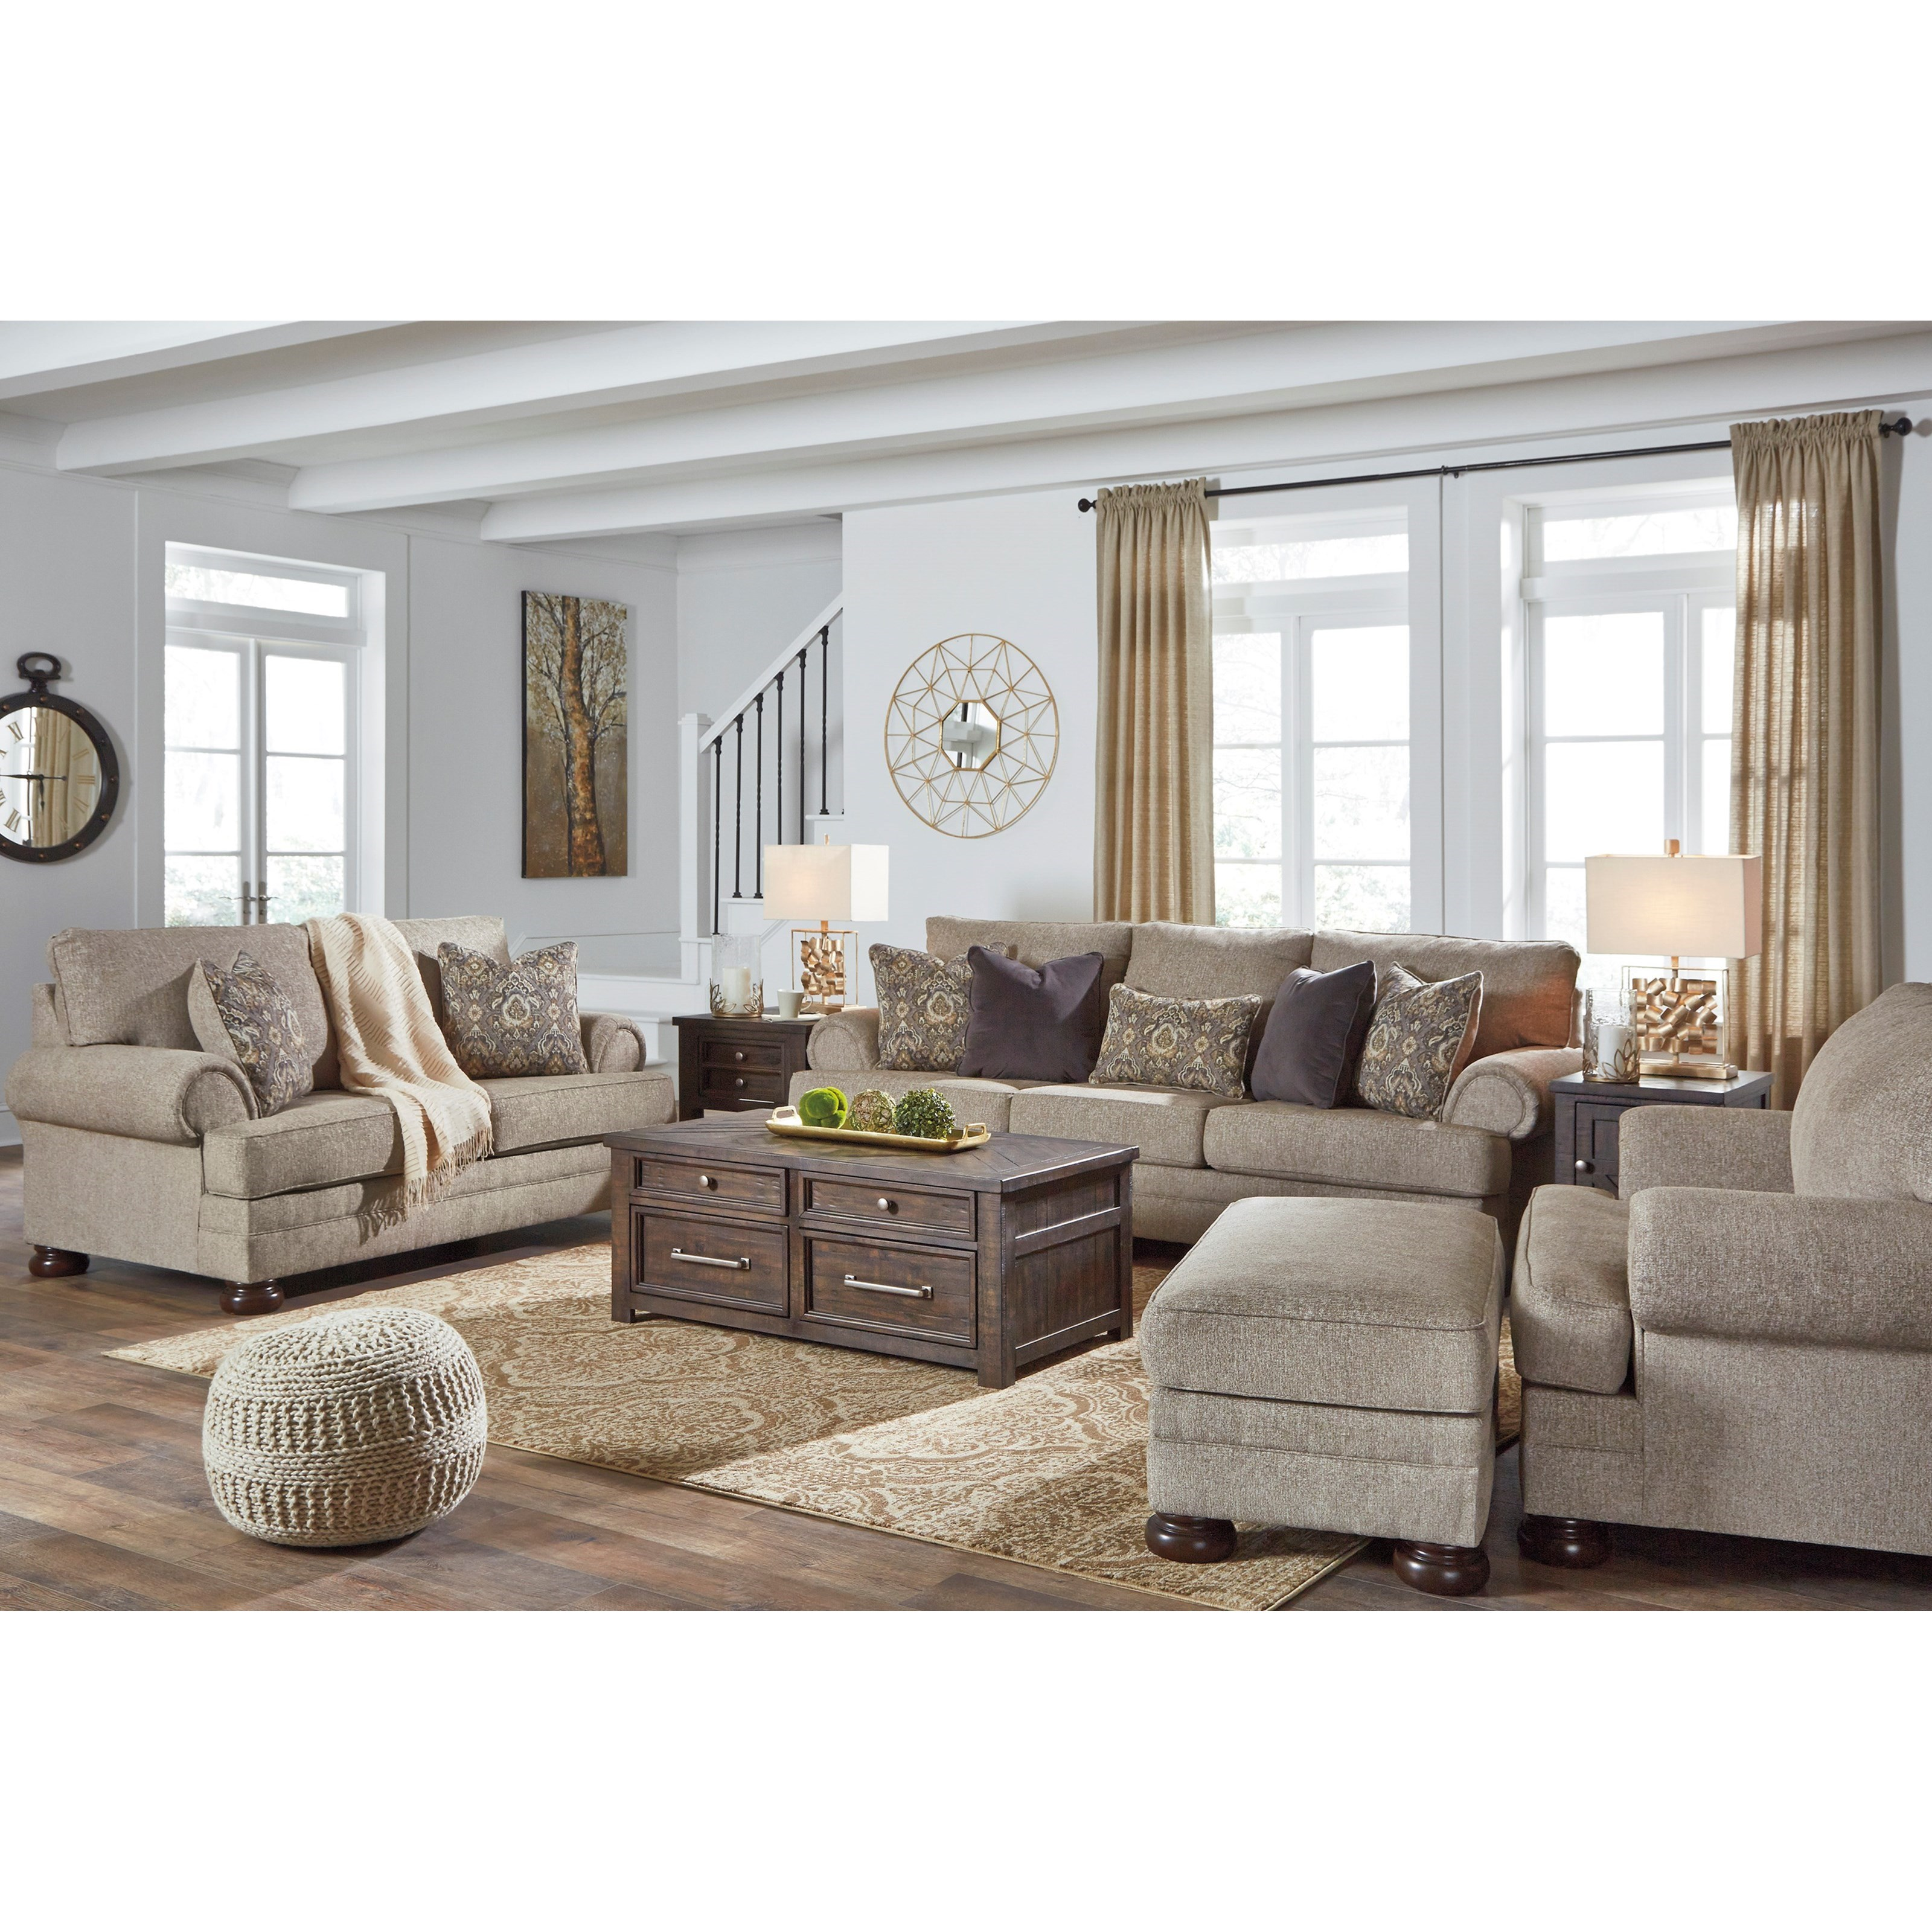 Kananwood Living Room Group by Signature Design by Ashley at Household Furniture